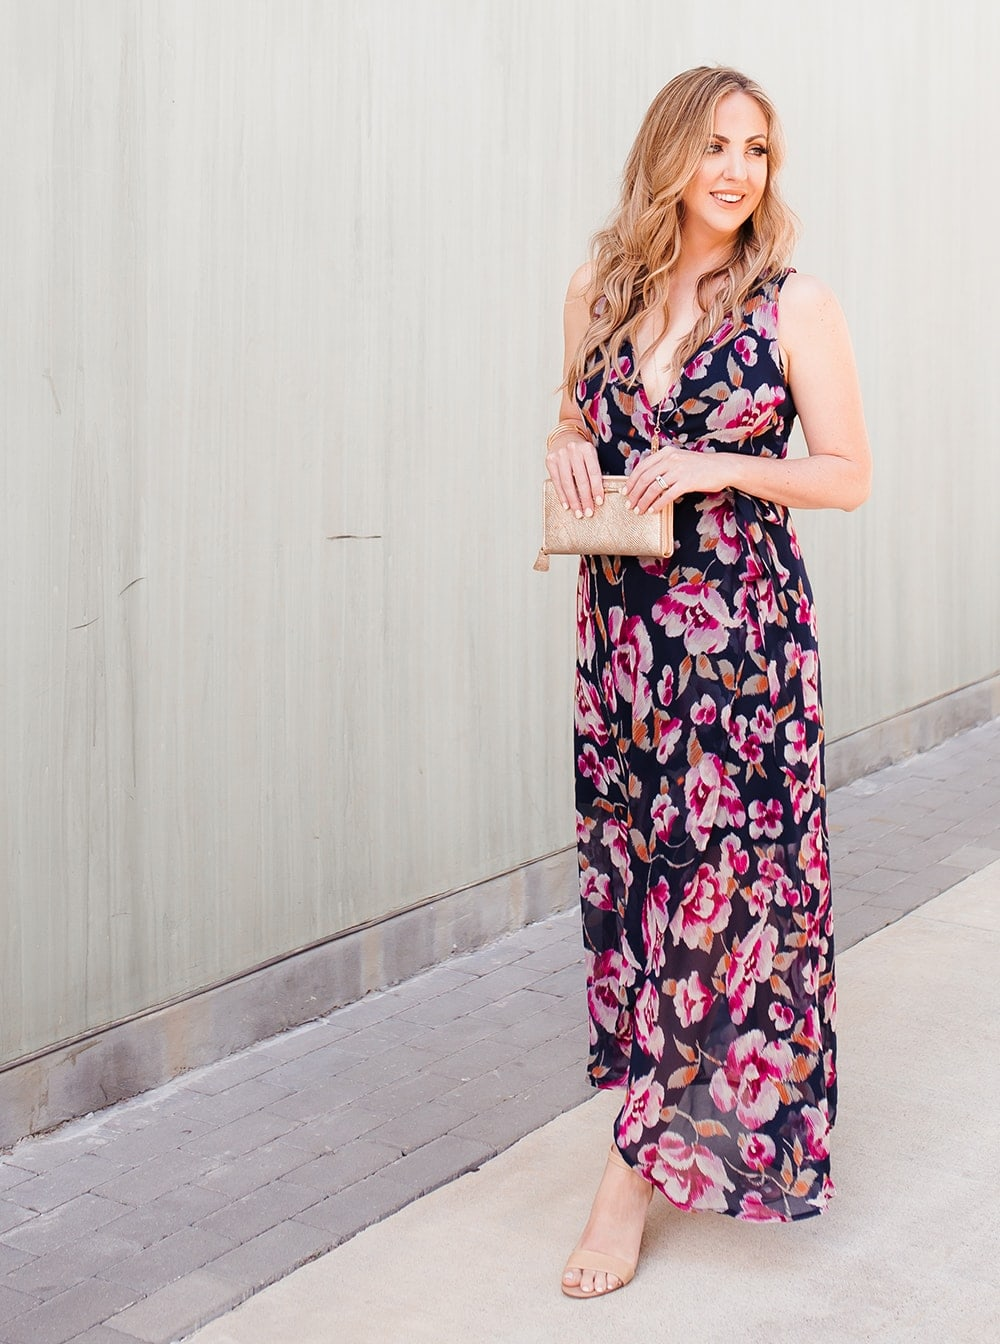 Houston lifestyle blogger Meg O. on the Go shares 3 perfect outfits for summer - a wrap dress needs to be a closet staple!